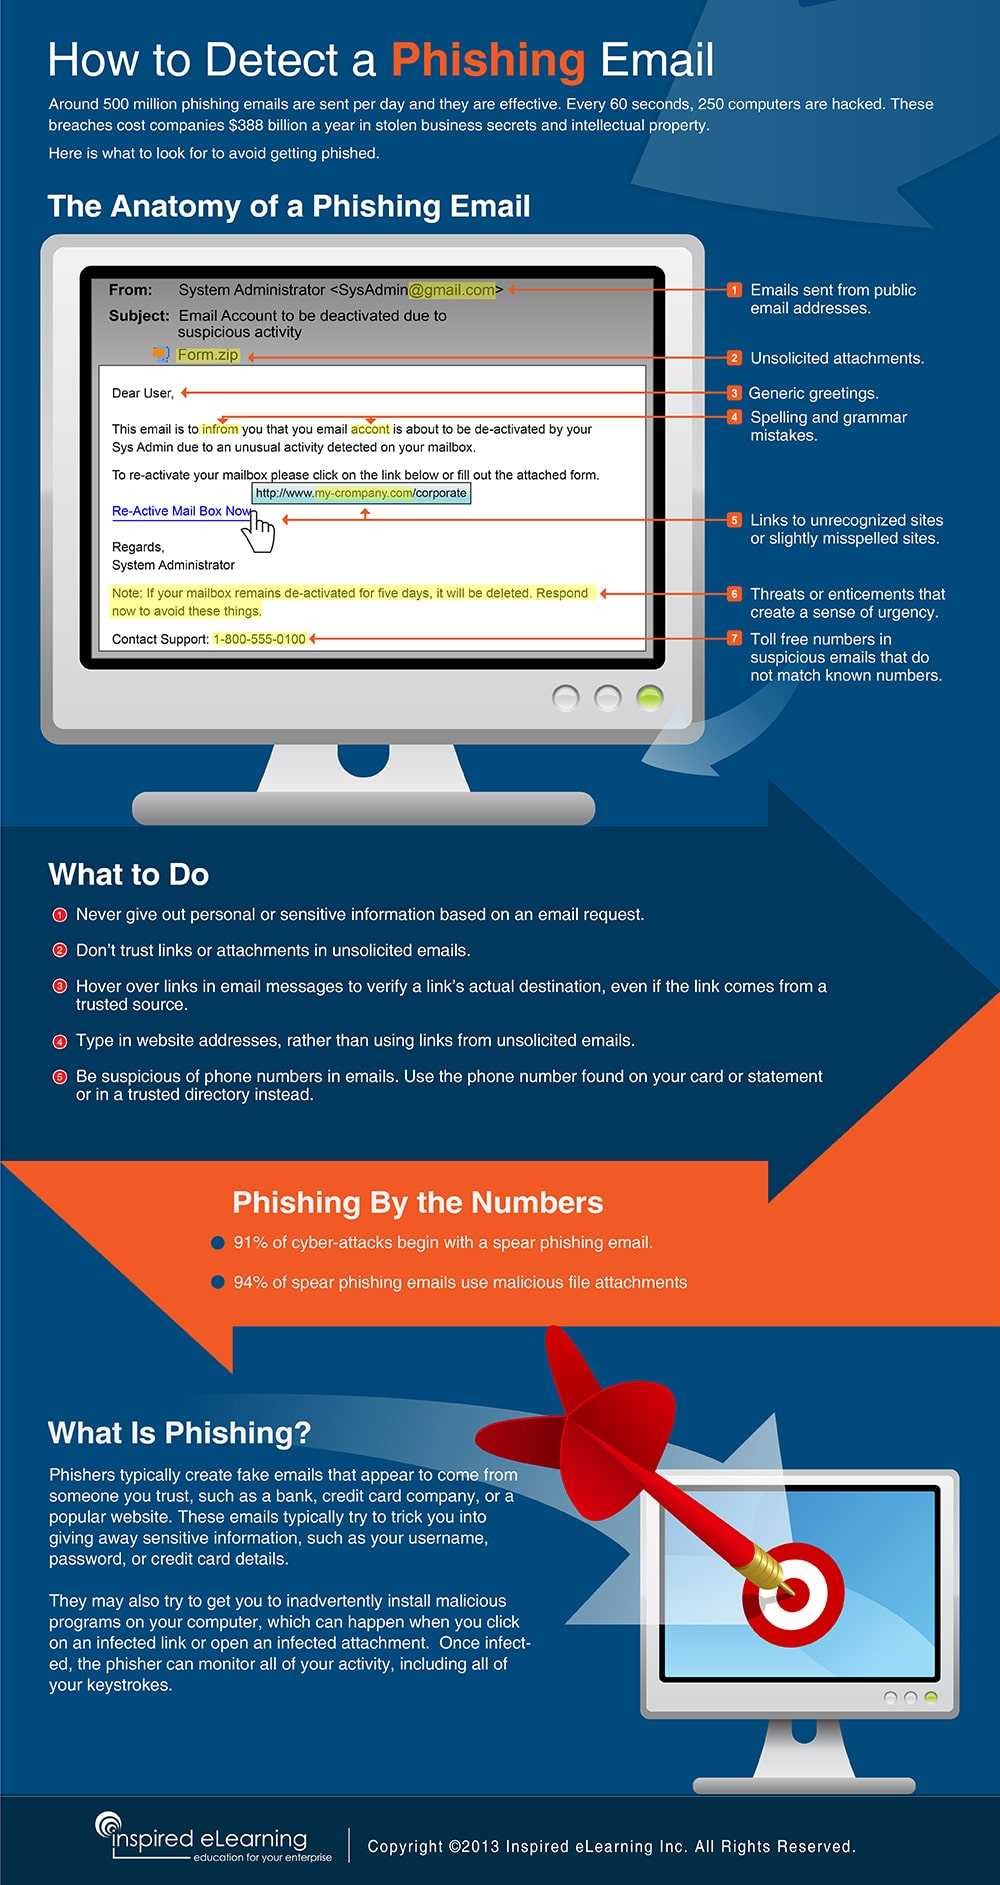 What A Phishing Email Looks Like And How To Detect One [Infographic]